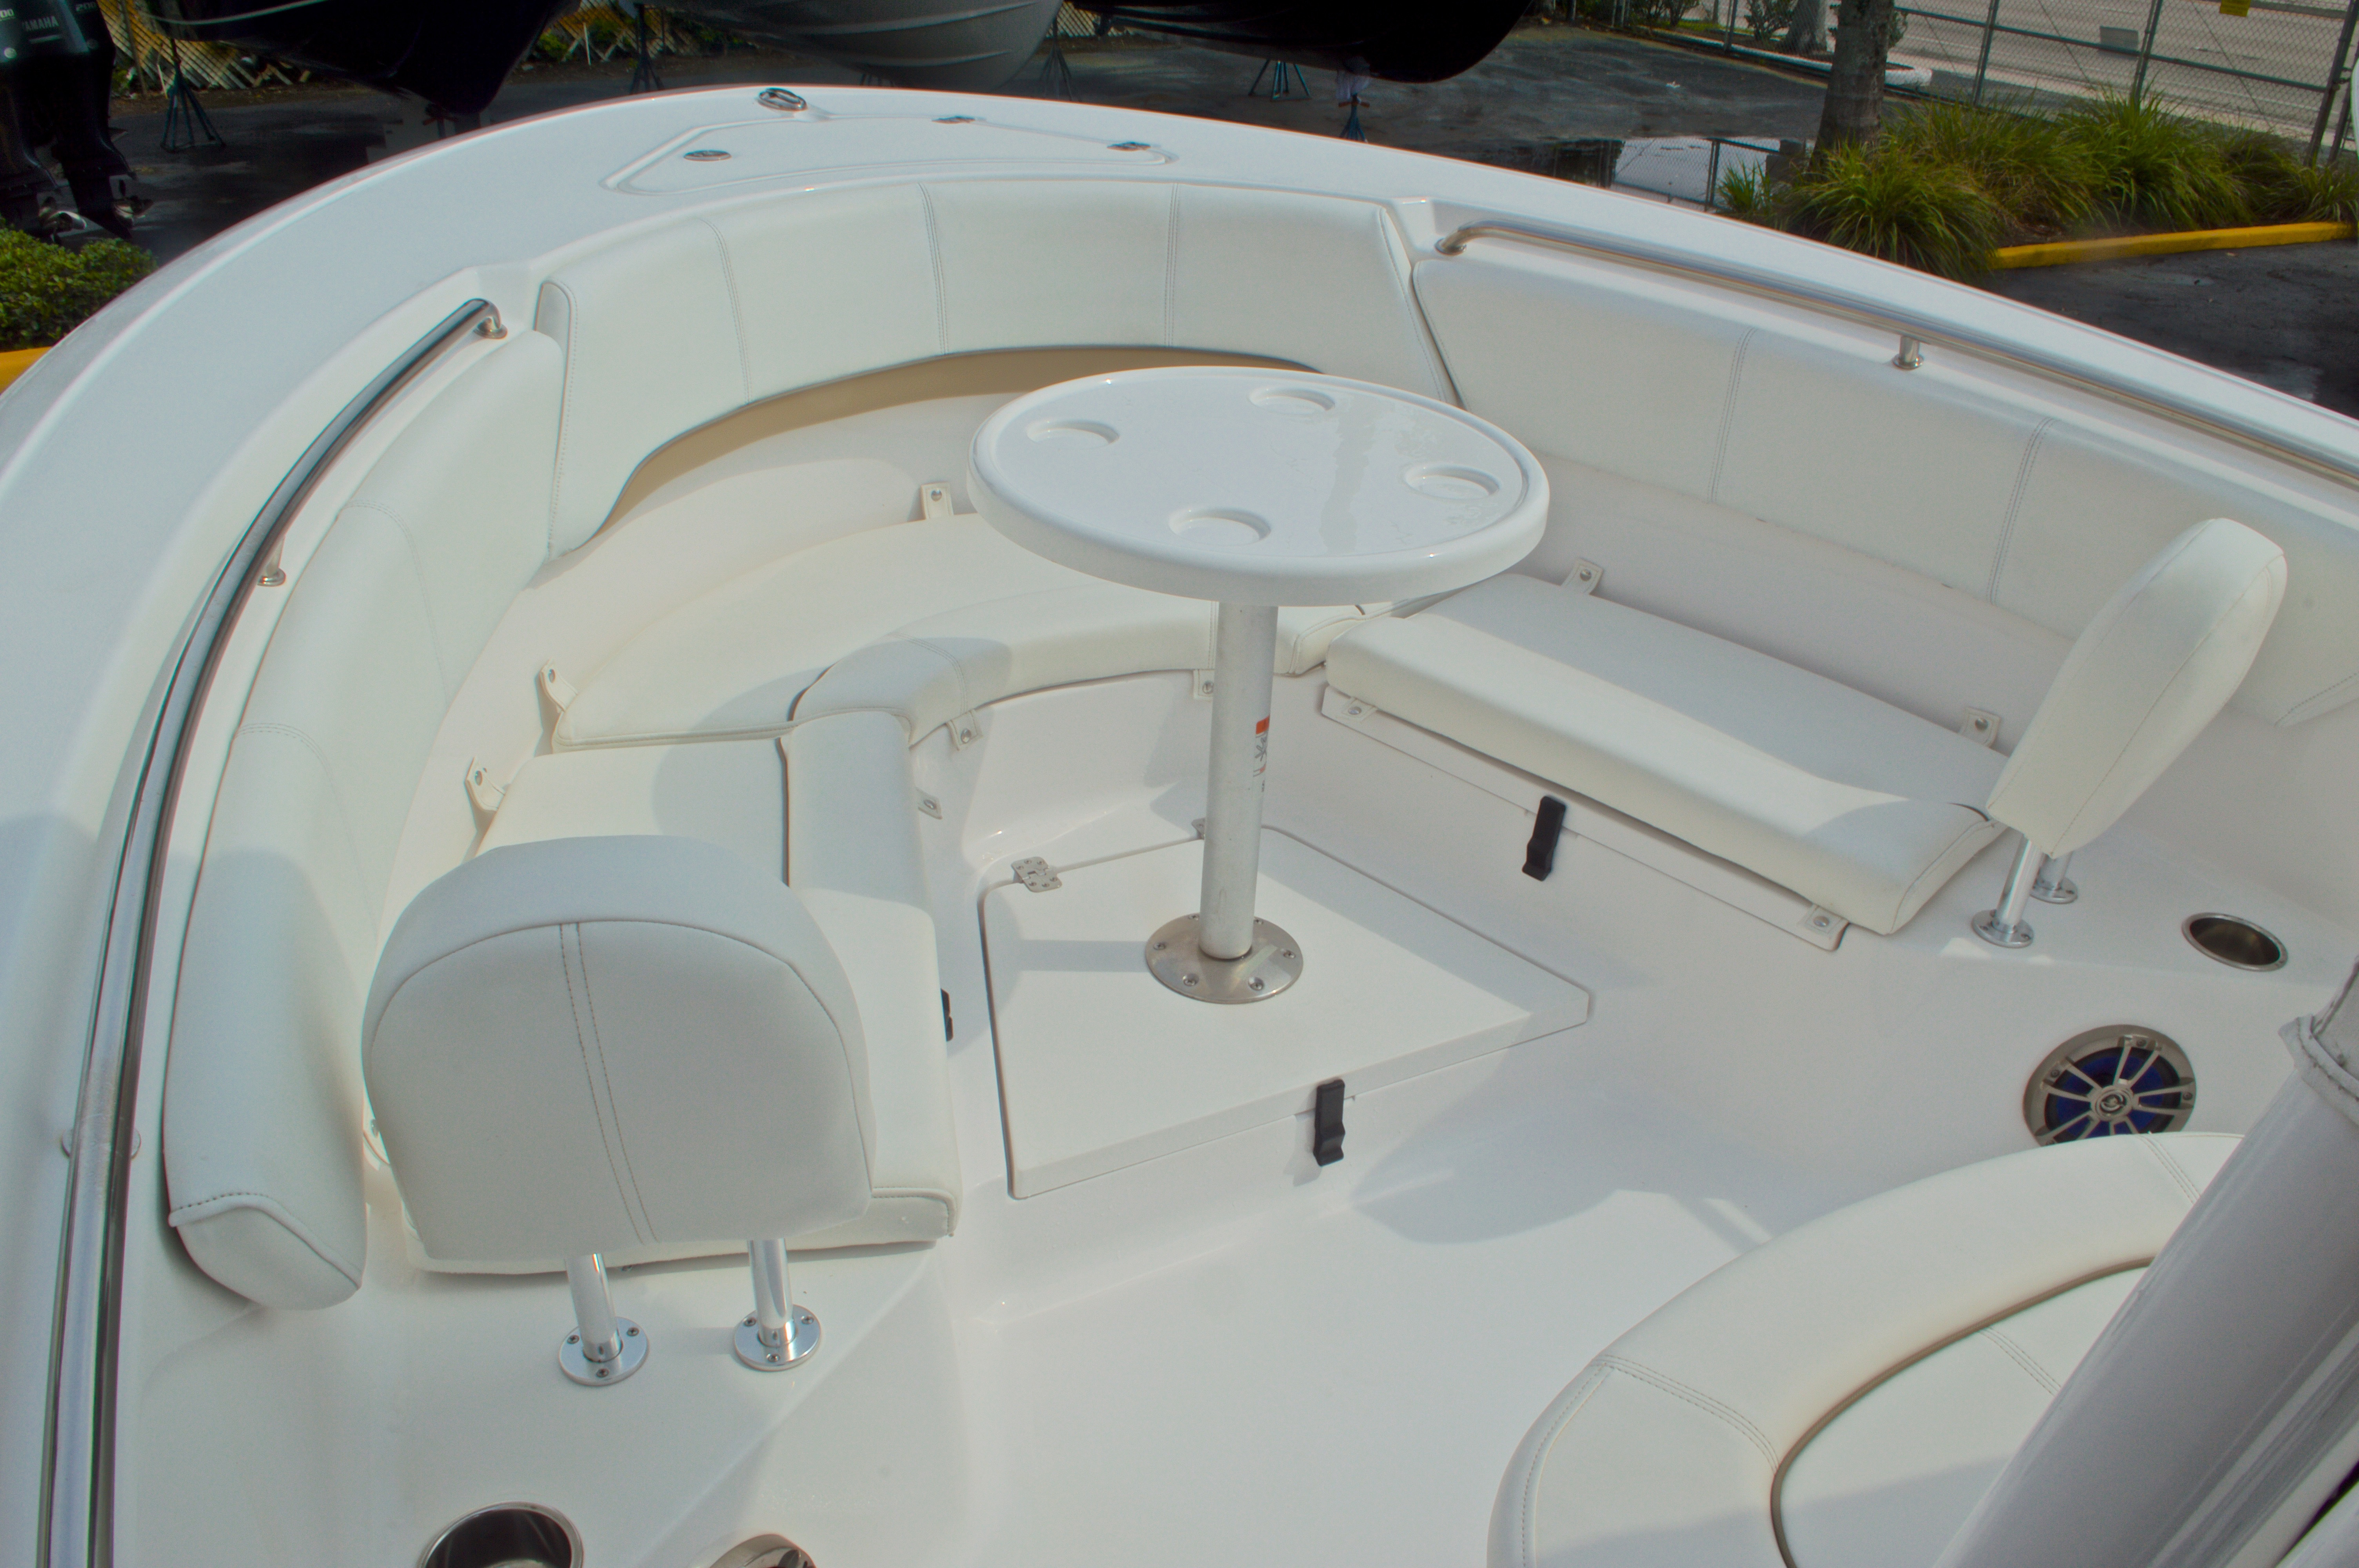 Thumbnail 46 for Used 2014 Sportsman Heritage 231 Center Console boat for sale in West Palm Beach, FL